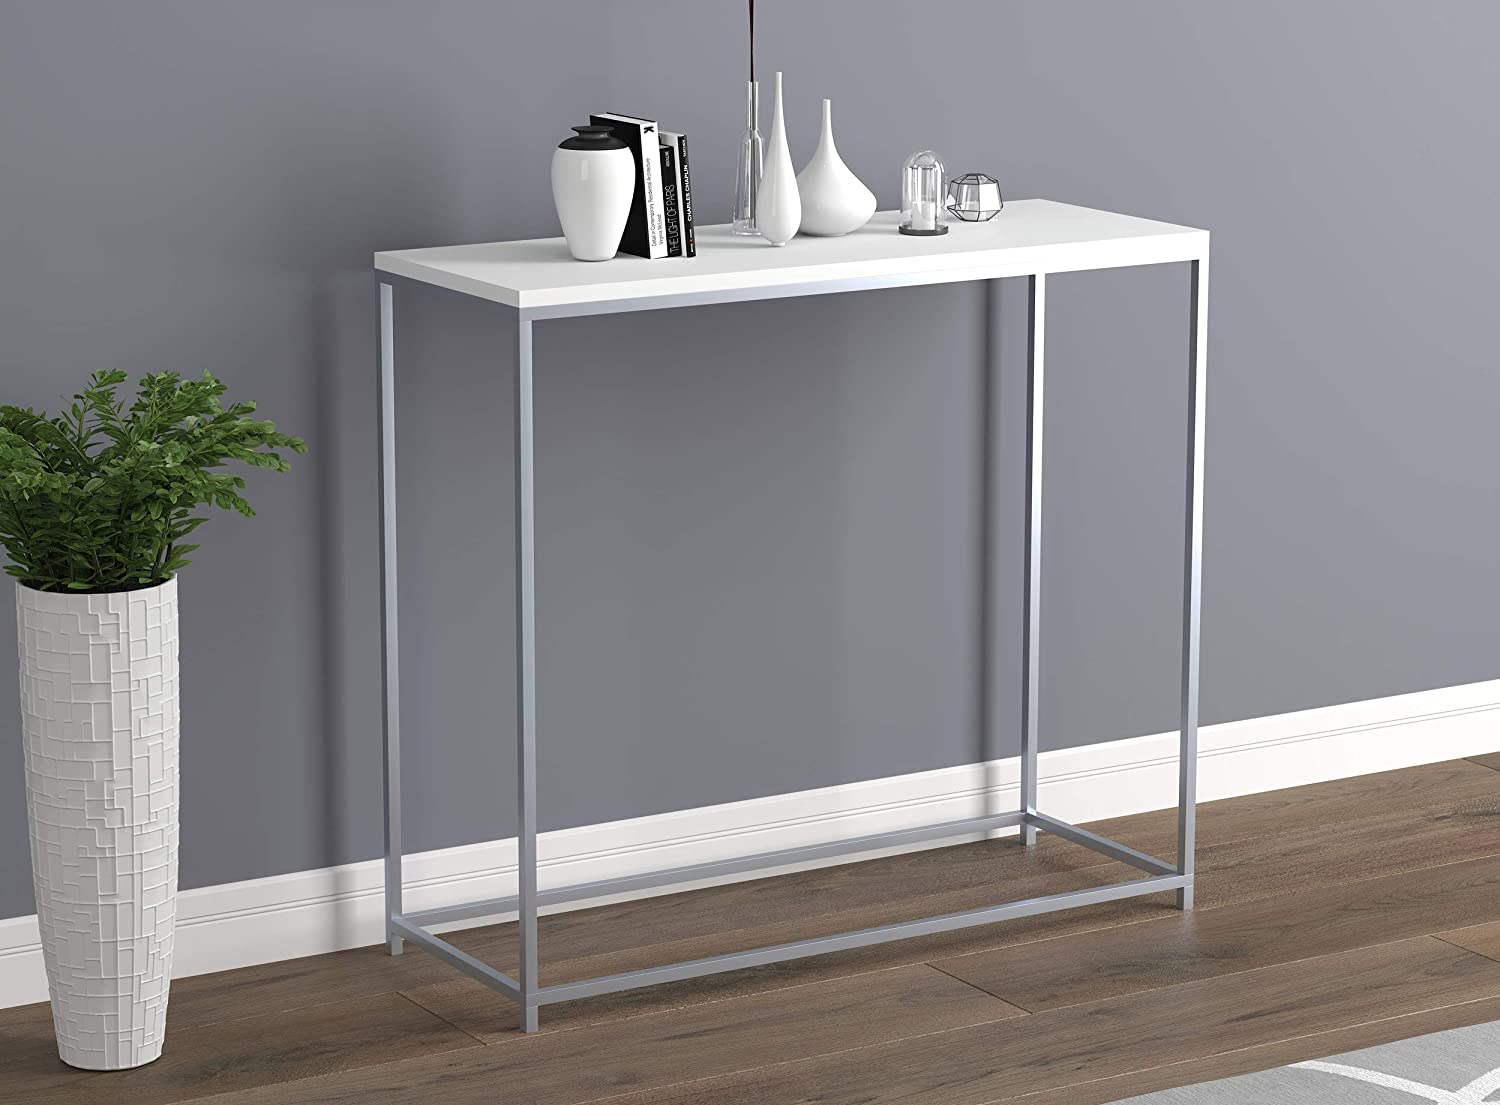 Safdie /& Co 81039.Z.01 Entryway Couch Accent Wall White with Silver Metal Console Sofa Table